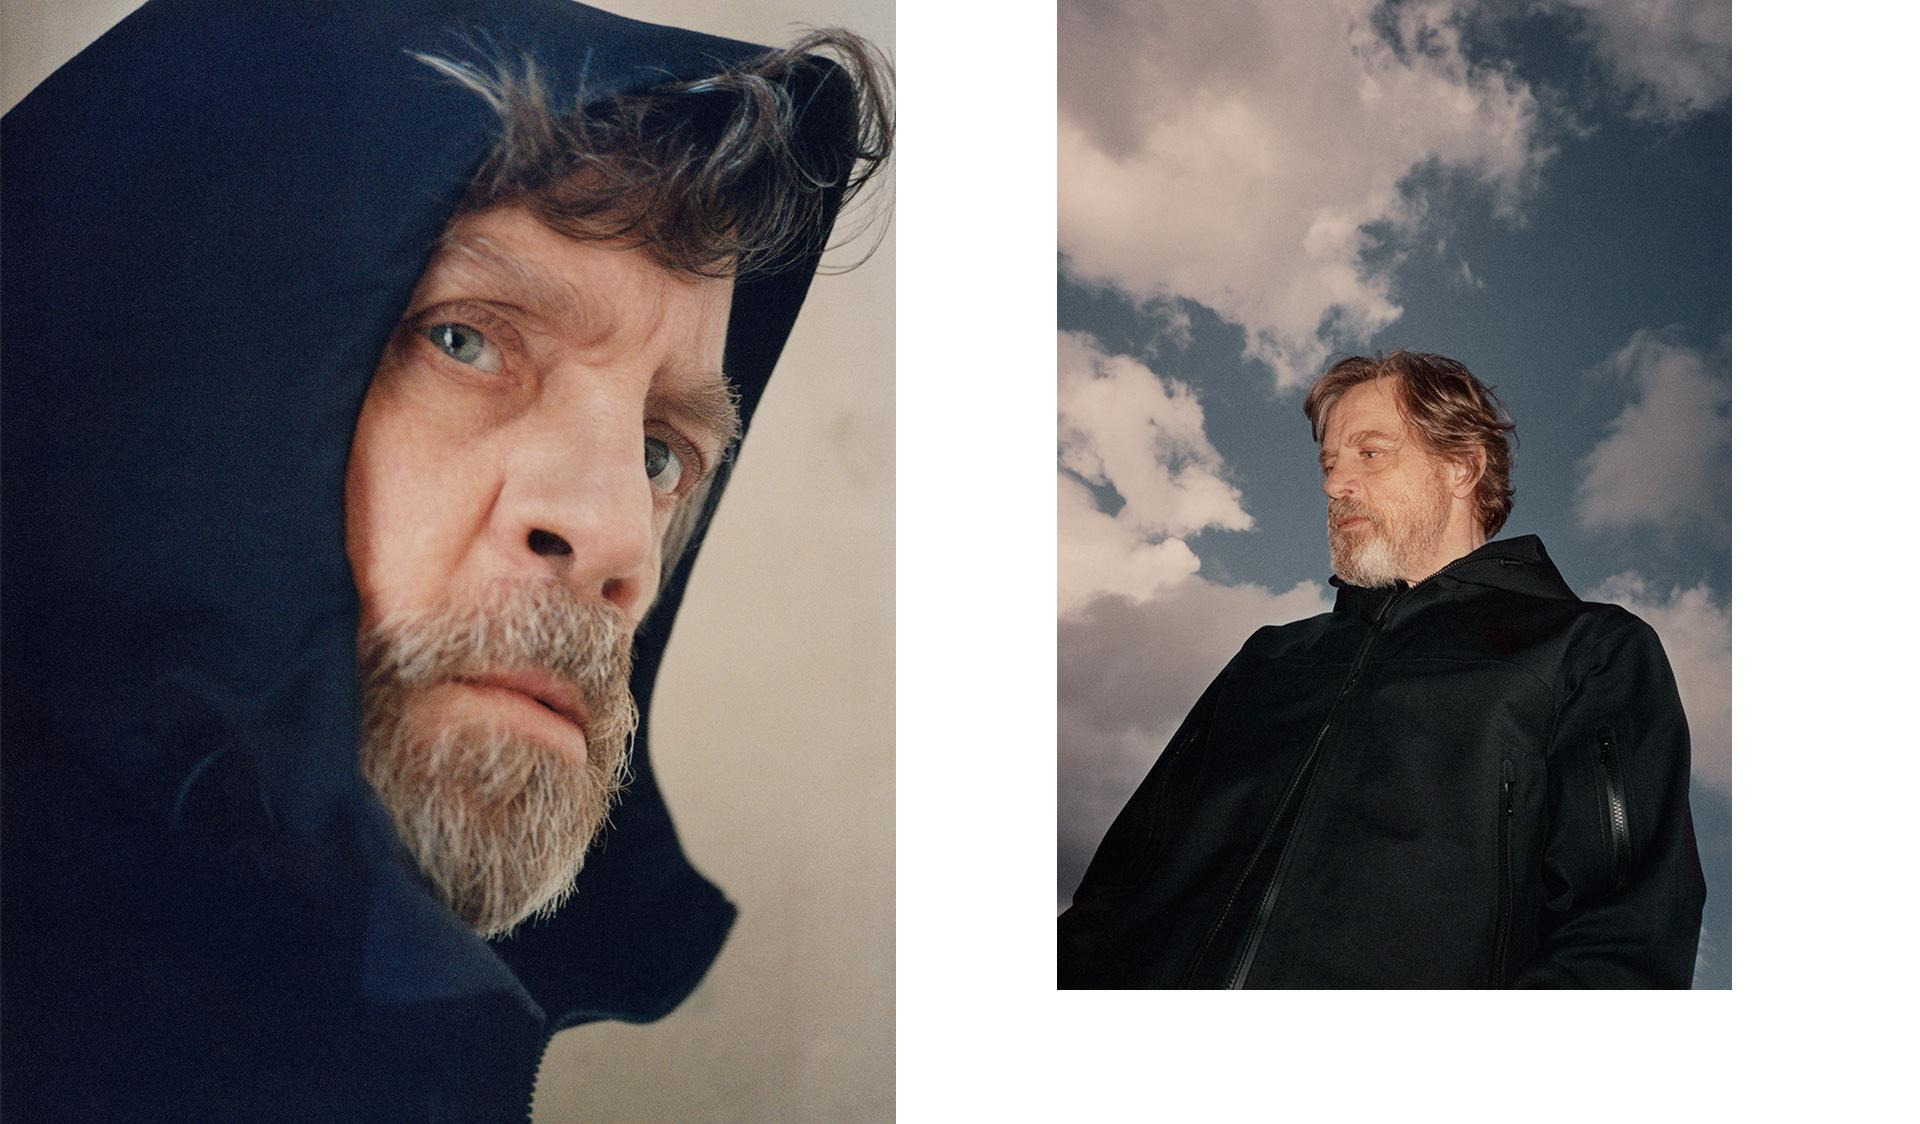 The Men's Project featuring Mark Hamill